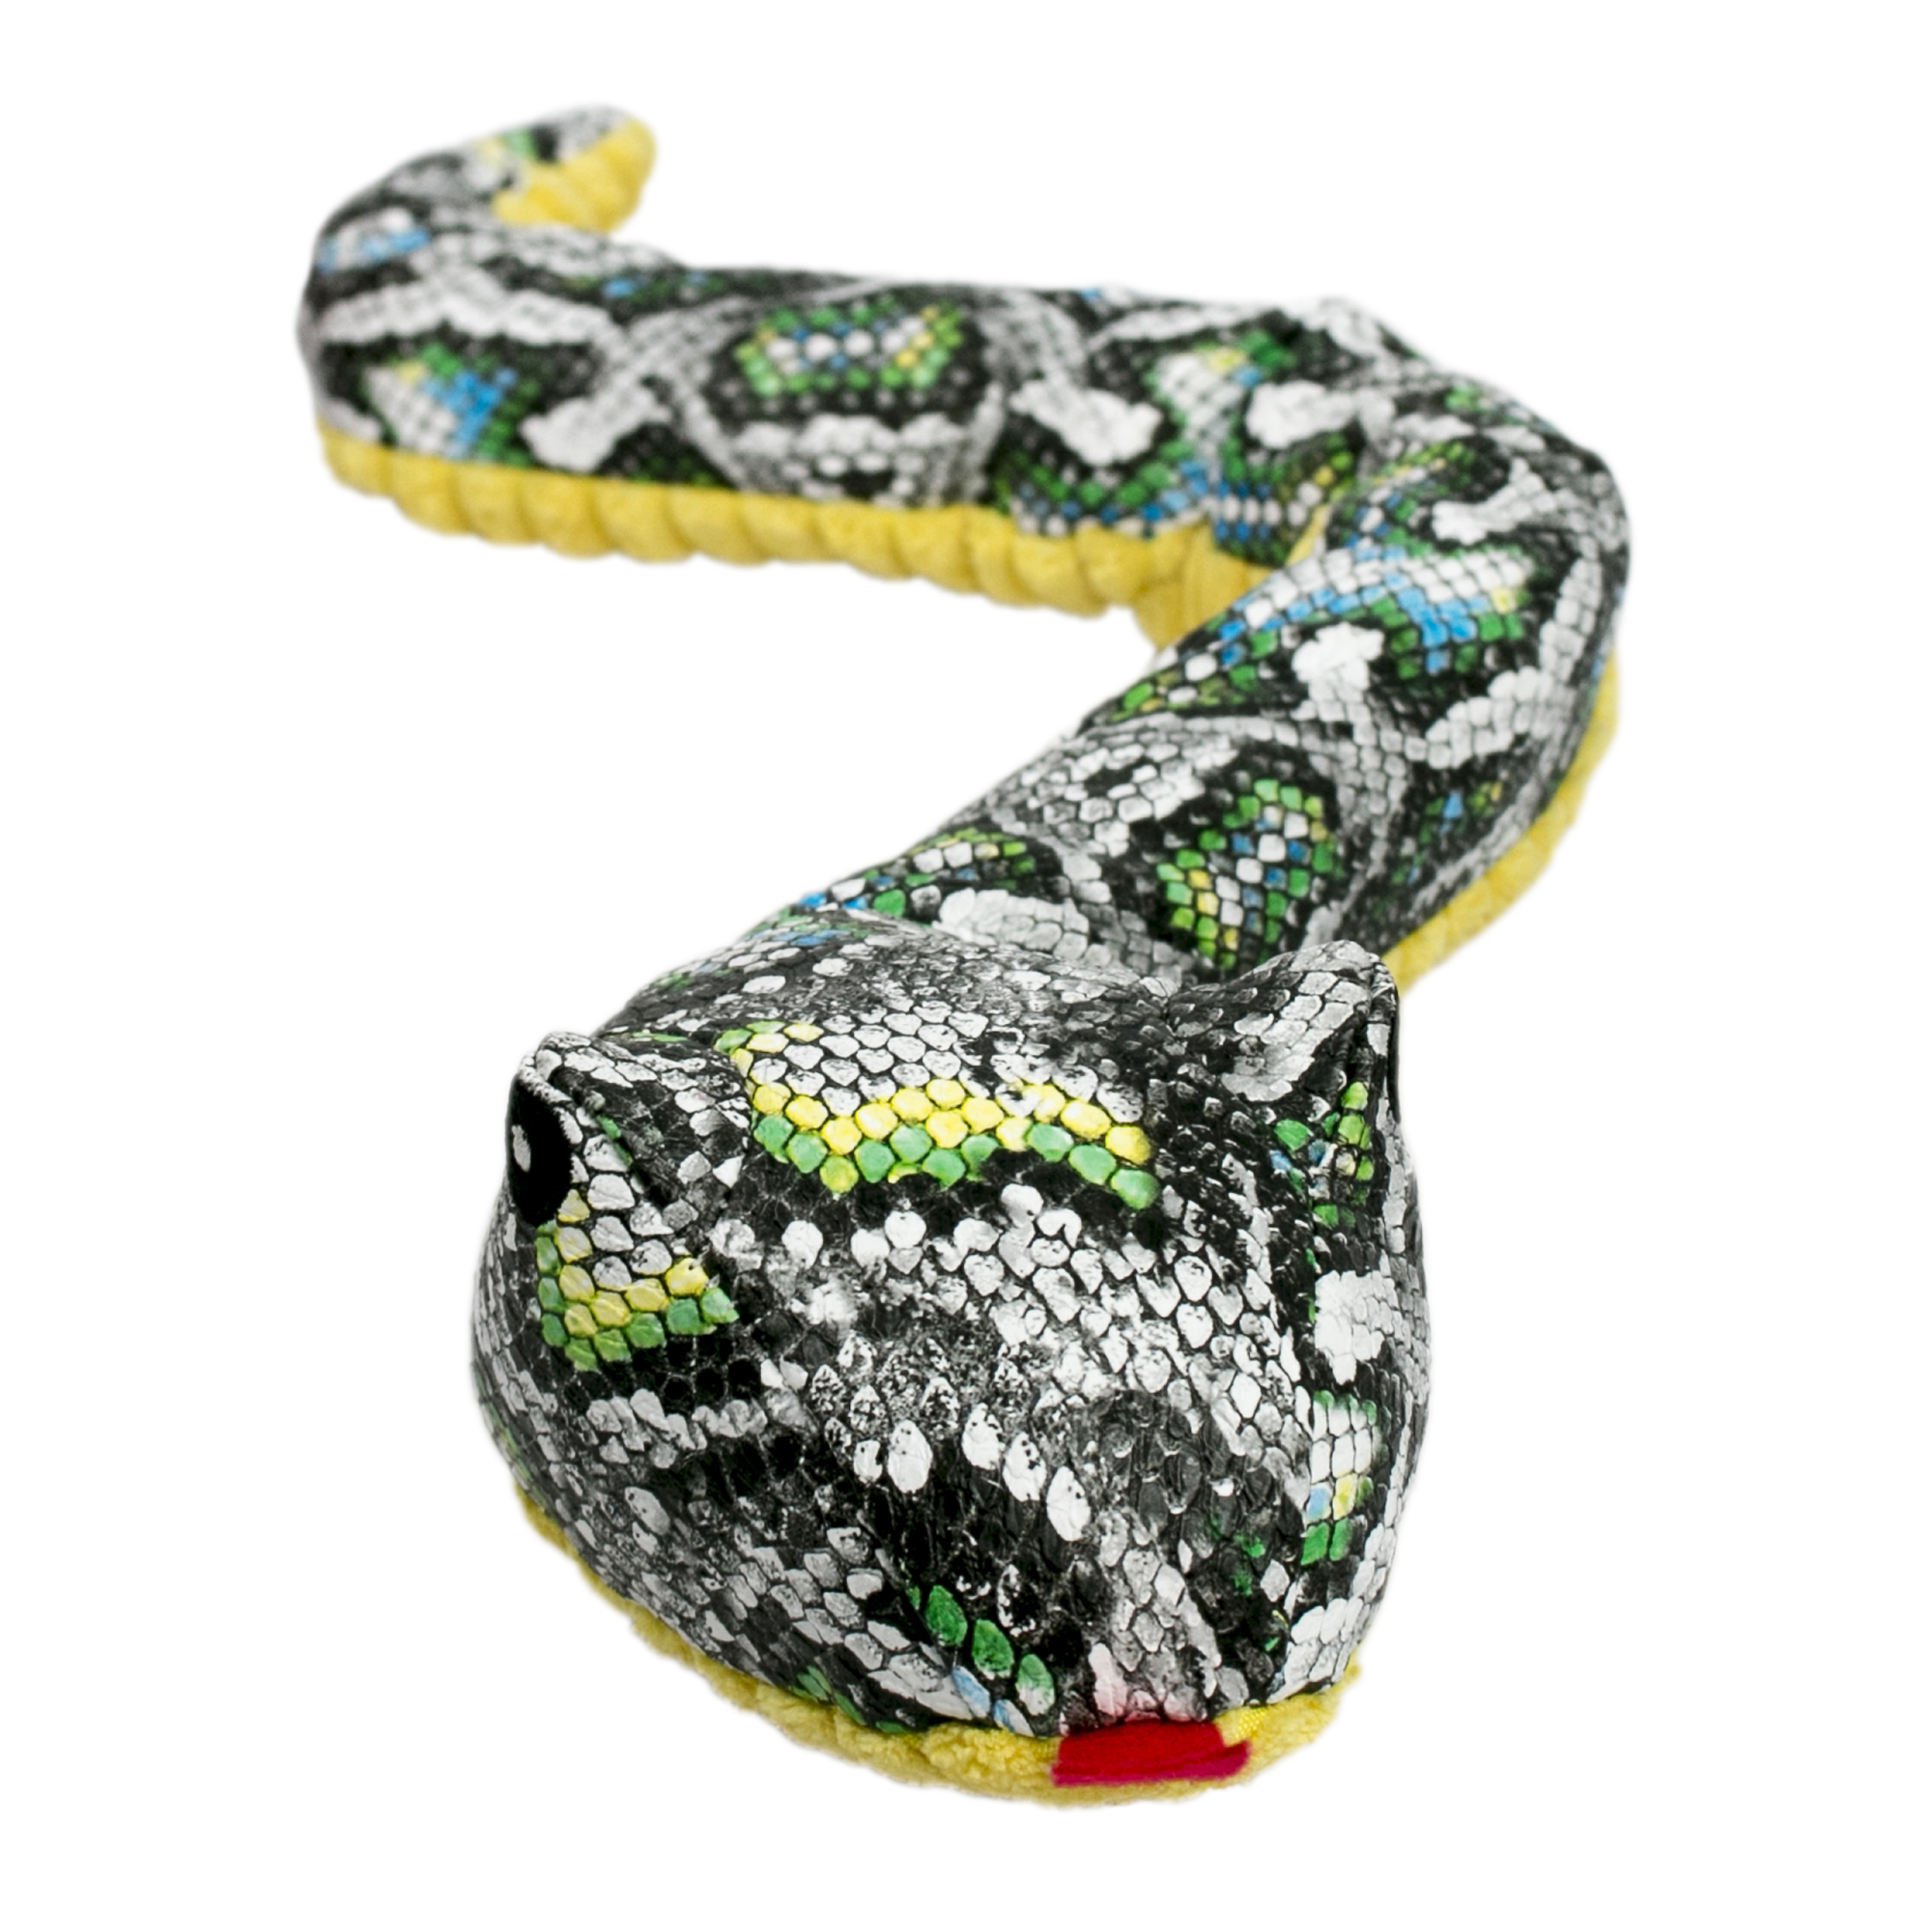 Tall Tails Crunch Snake Dog Toy, 23-in